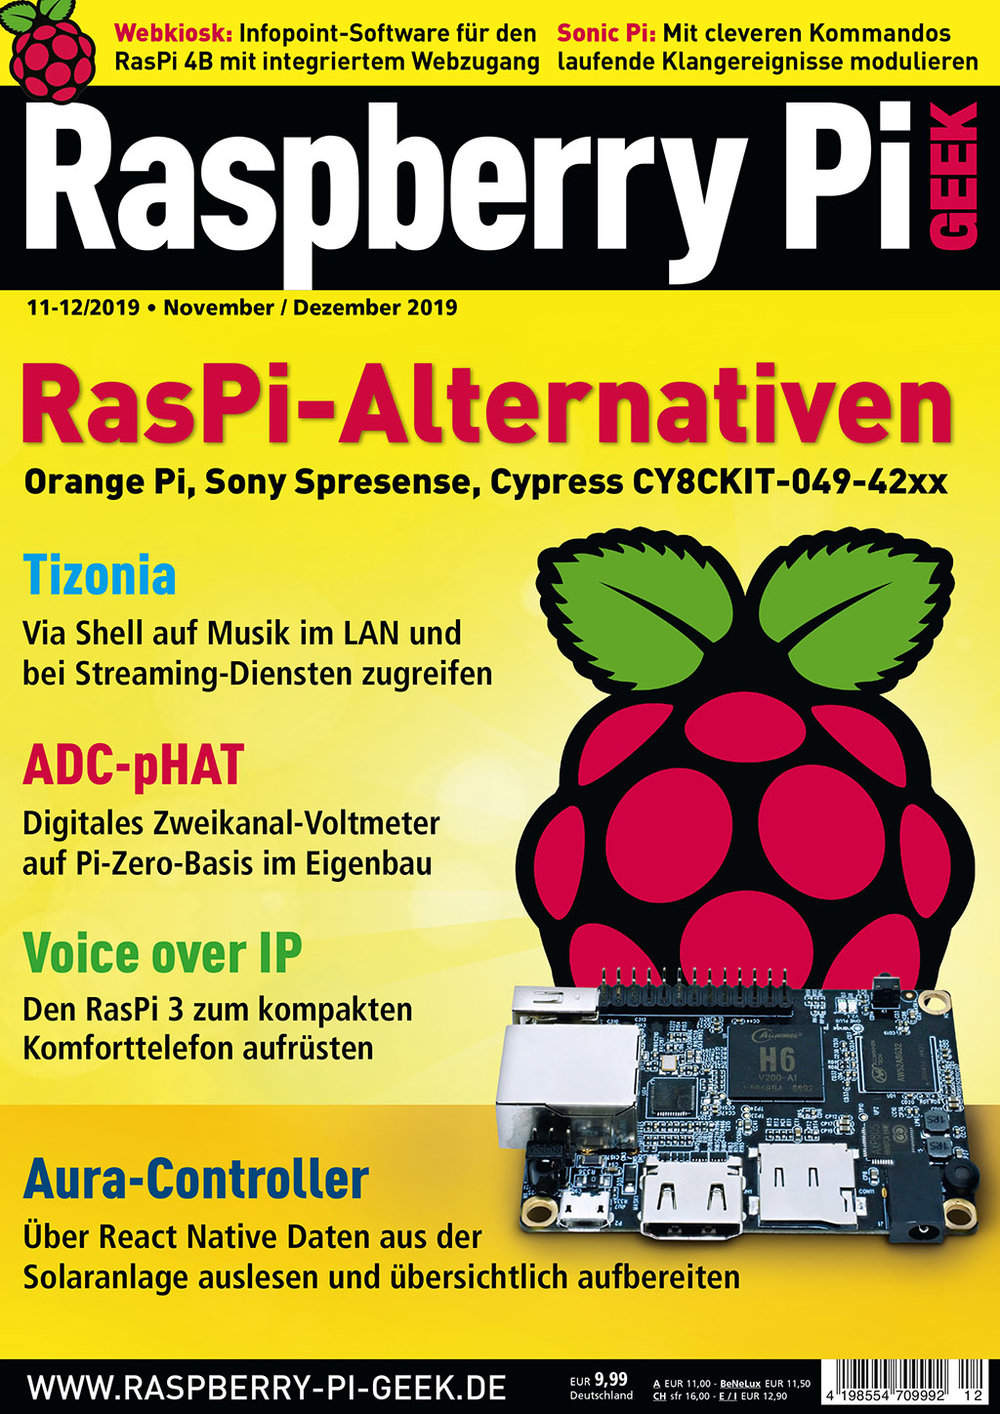 Raspberry Pi Geek 11-12/2019